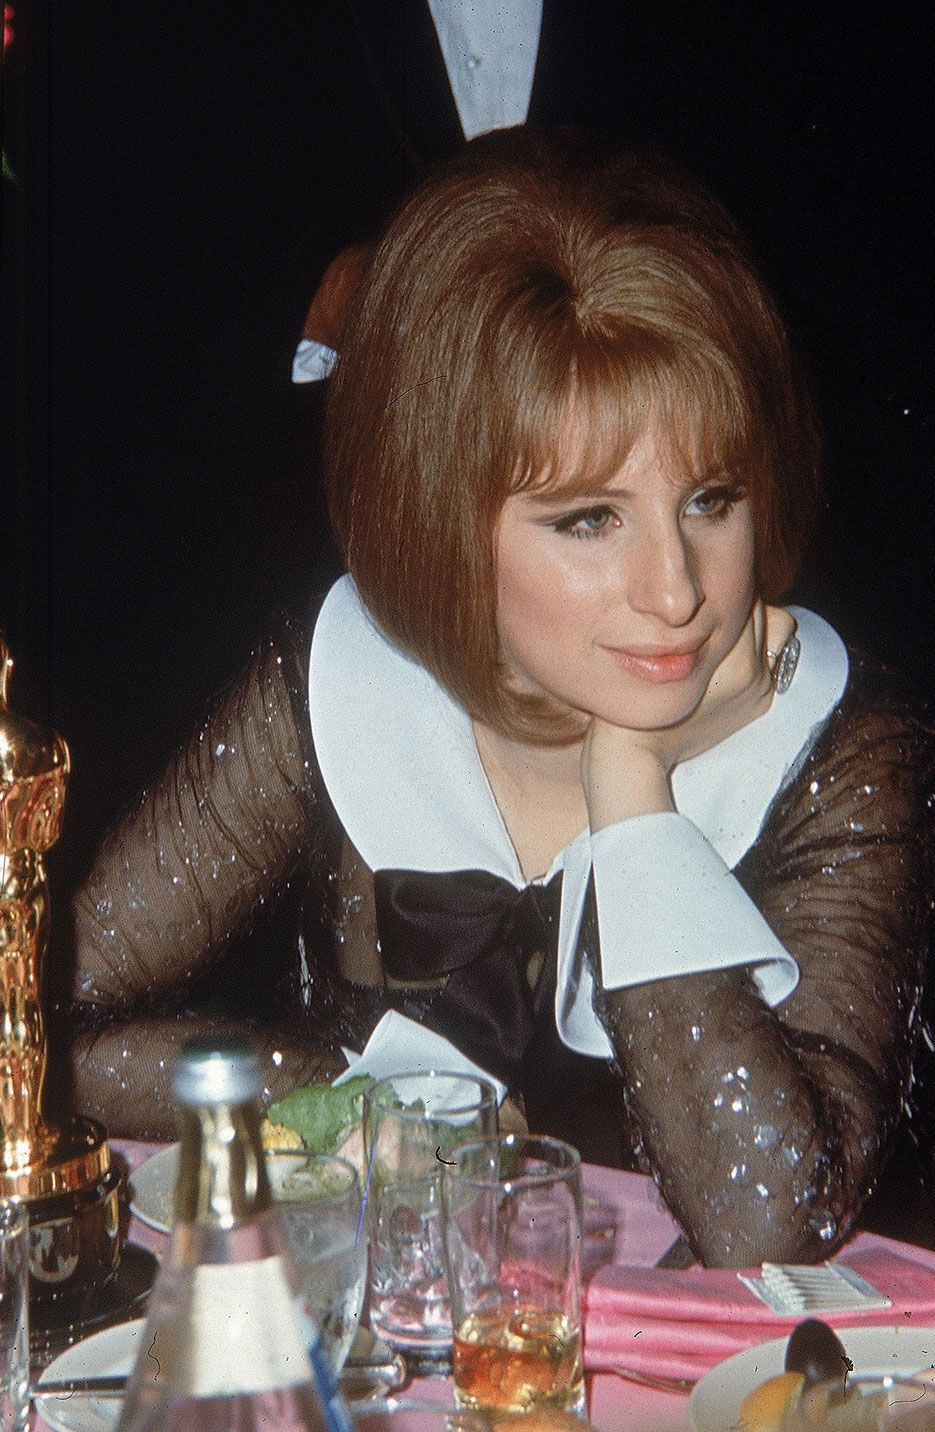 Best Funny Girl #TBT: Vintage Photos of Celebrities at Oscar Parties 1969: Barbra Streisand at a table with her Best Actress Oscar, awarded for Funny Girl. 9